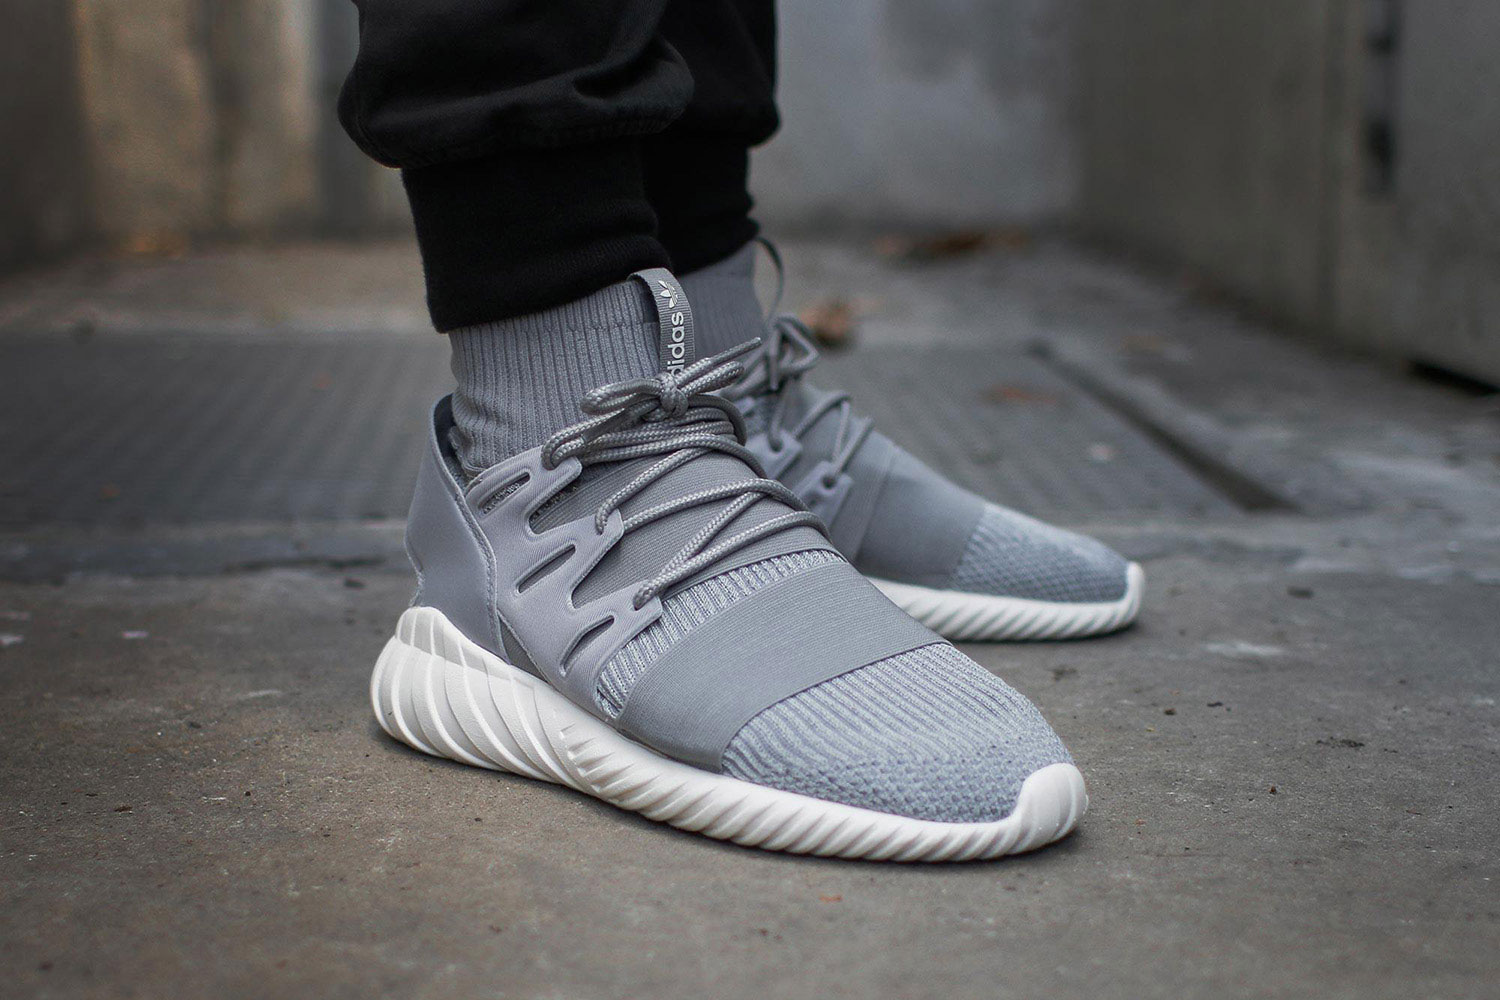 Adidas Tubular Nova Primeknit GID Shoes Beige adidas UK